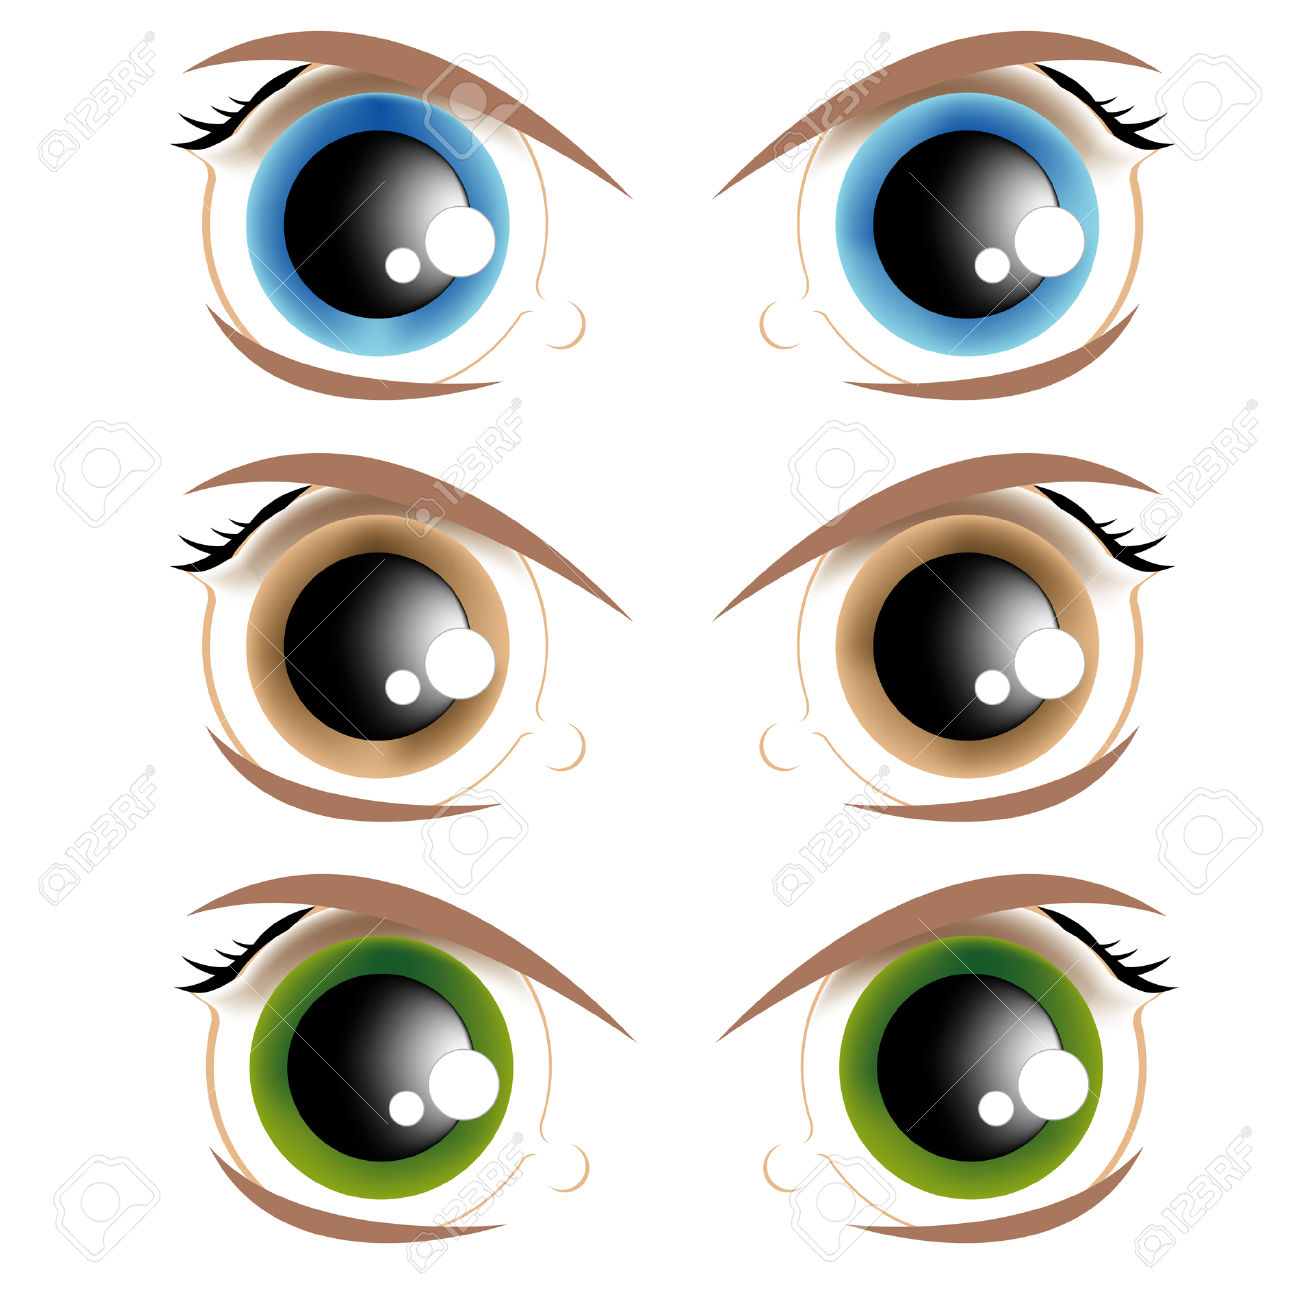 The Vector Image Of Animated Eyes Of Different Colour Royalty Free.